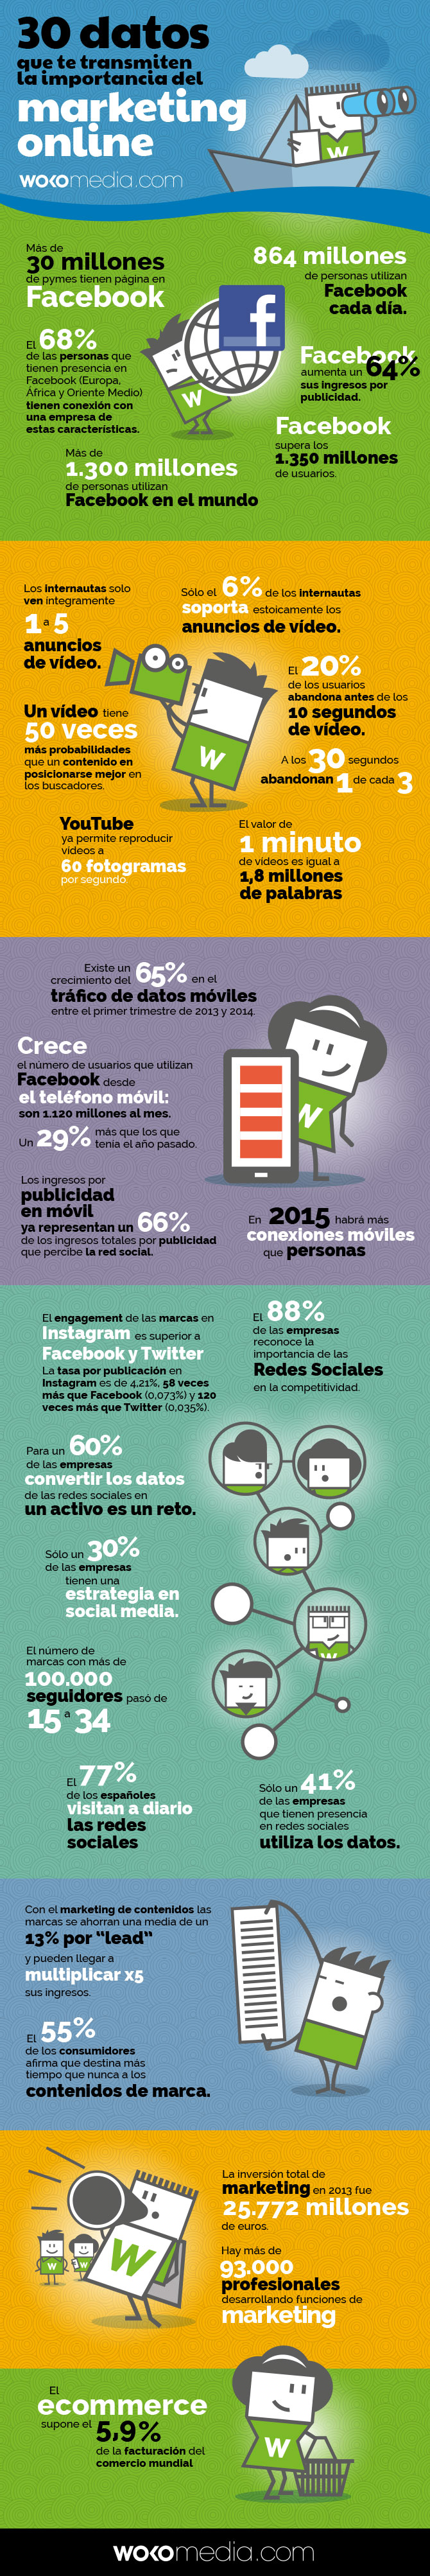 Datos y cifras sobre marketing online